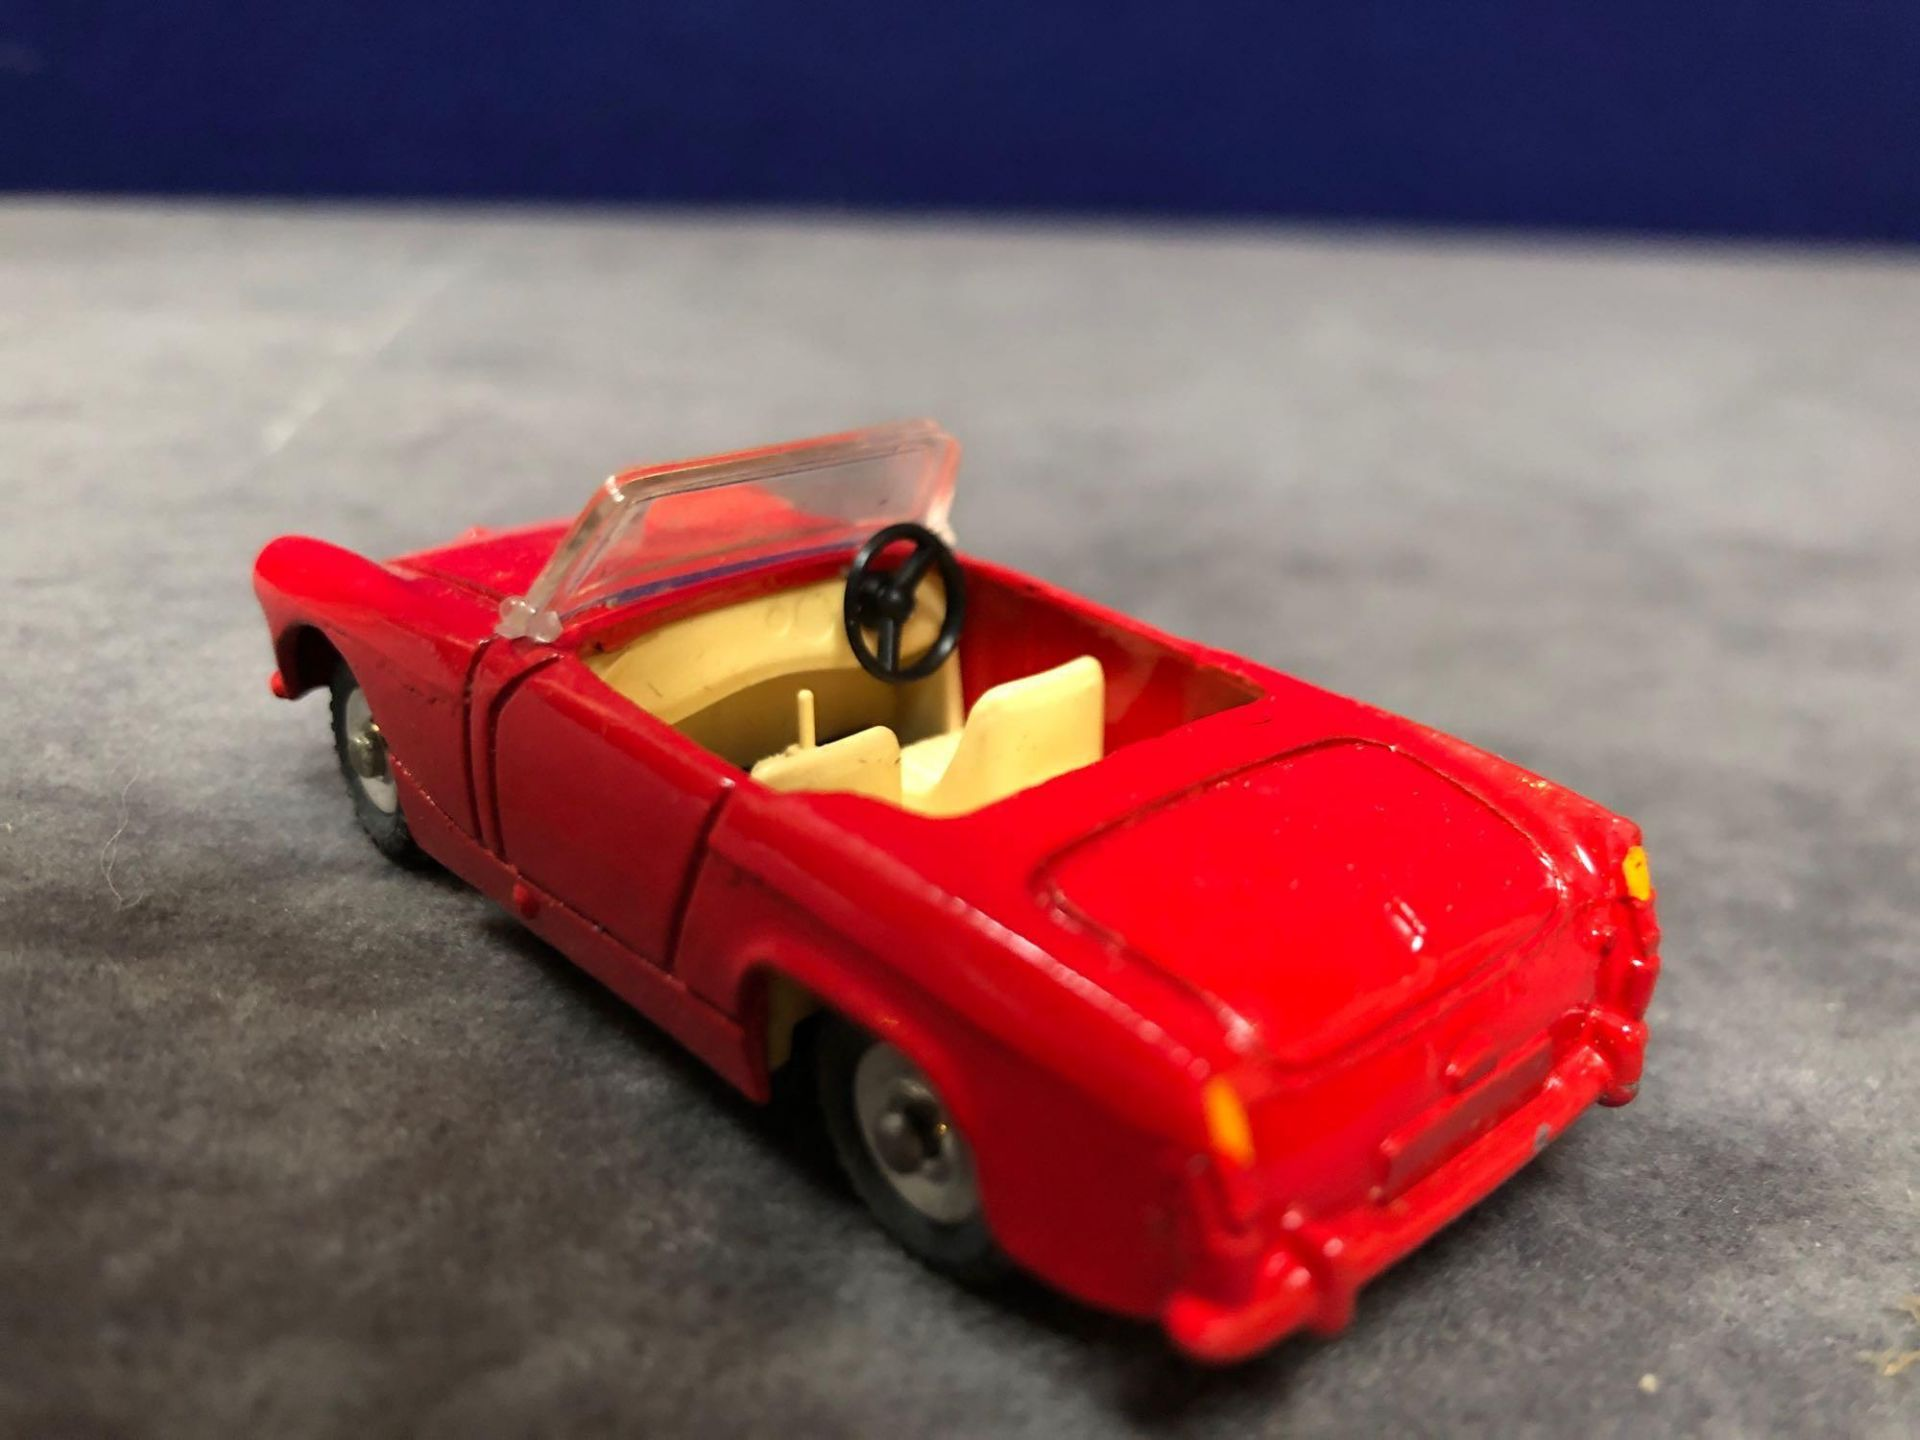 Dinky #112 Austin Sprint In Red With Inner Packaging Mint In Excellent Box 1965-1970 - Image 3 of 4